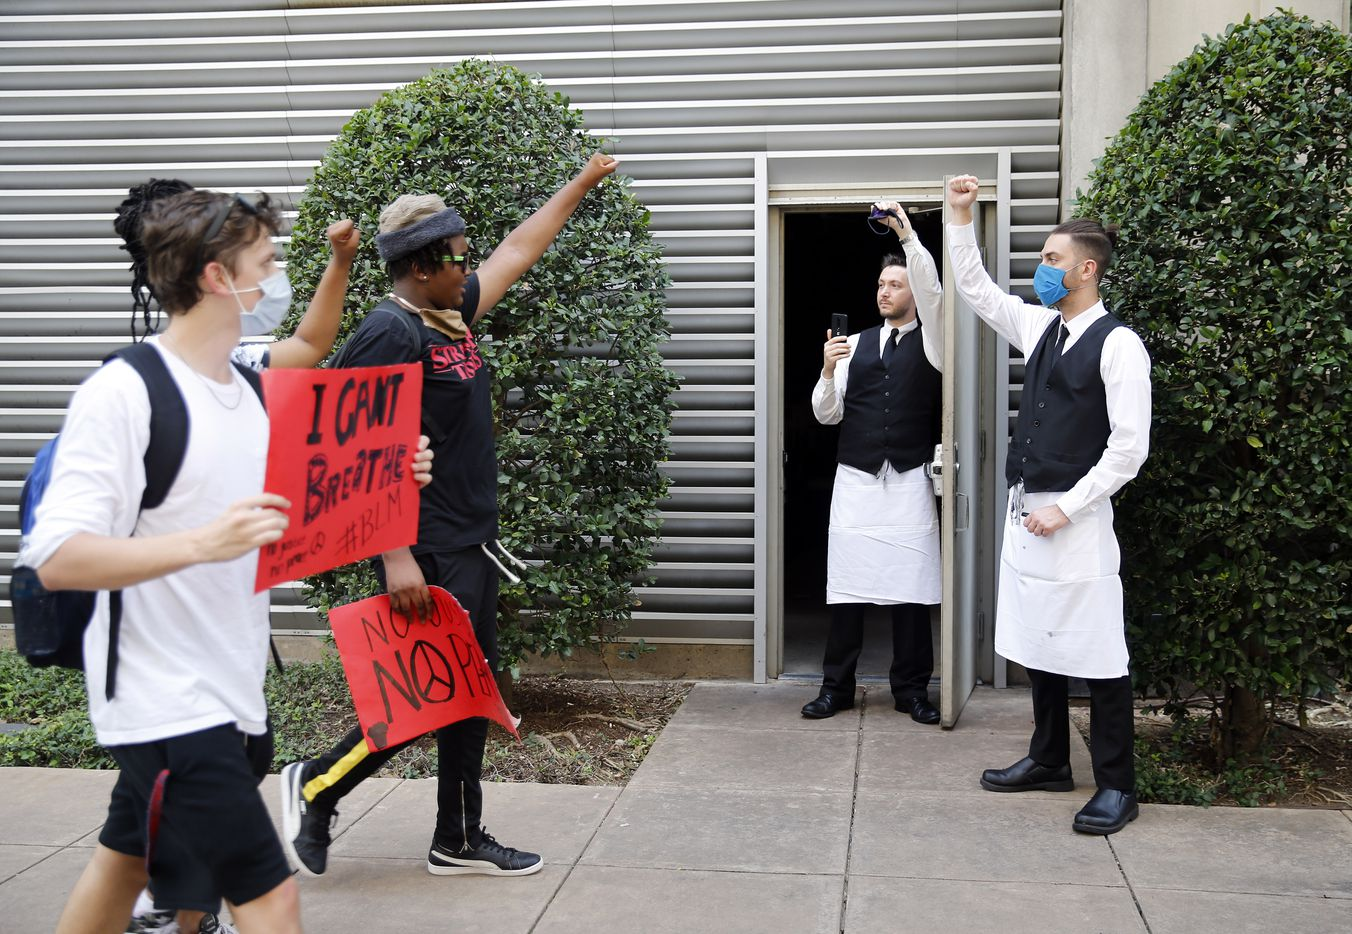 Employees of Perry's Steakhouse and Grill (right) came out of the restaurant in solidarity of marching protestors supporting Black Lives Matters in the Uptown area of Dallas, Tuesday, June 2, 2020. They gathered to protest the in-custody death of George Floyd.